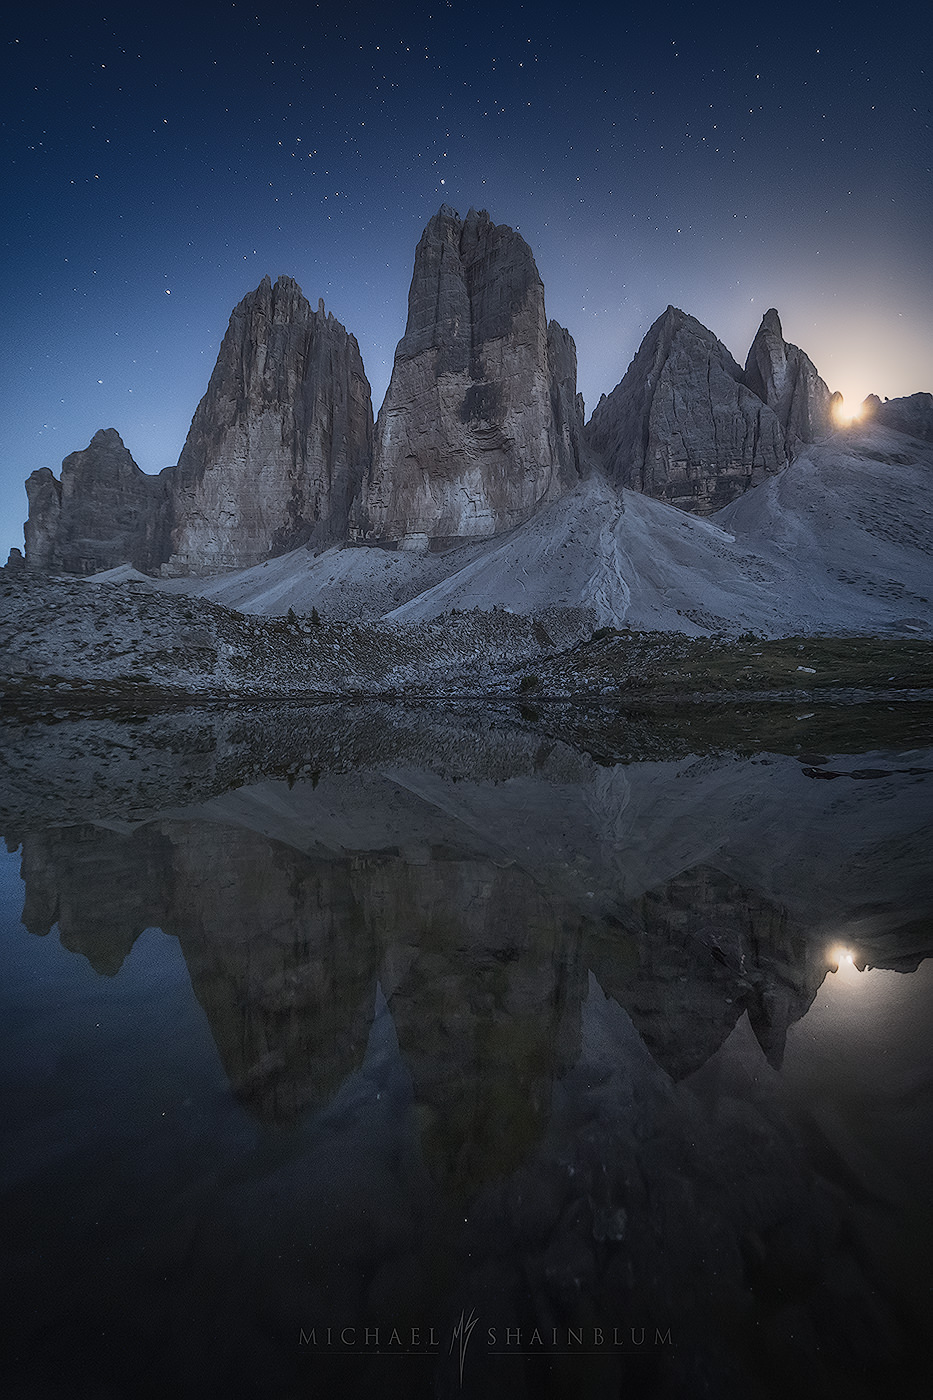 Dolomites Moonset Landscape Photography